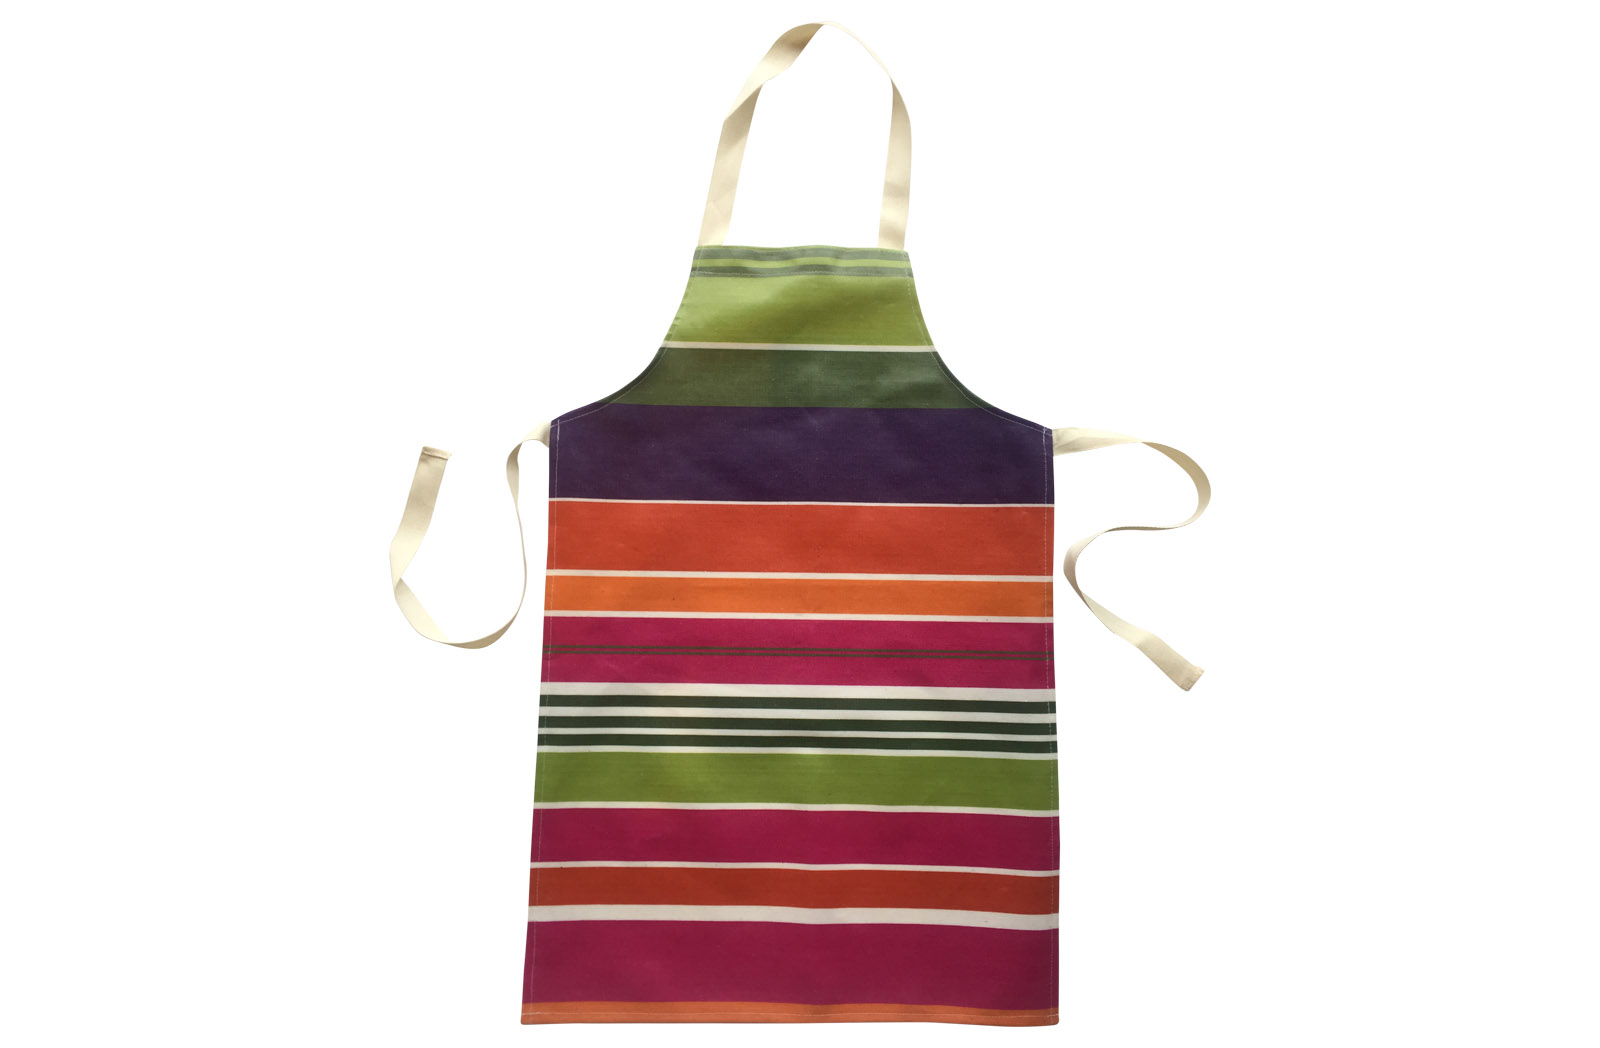 Wipe Clean PVC Apron for Children - bright pink, green, tangerine and purple stripes